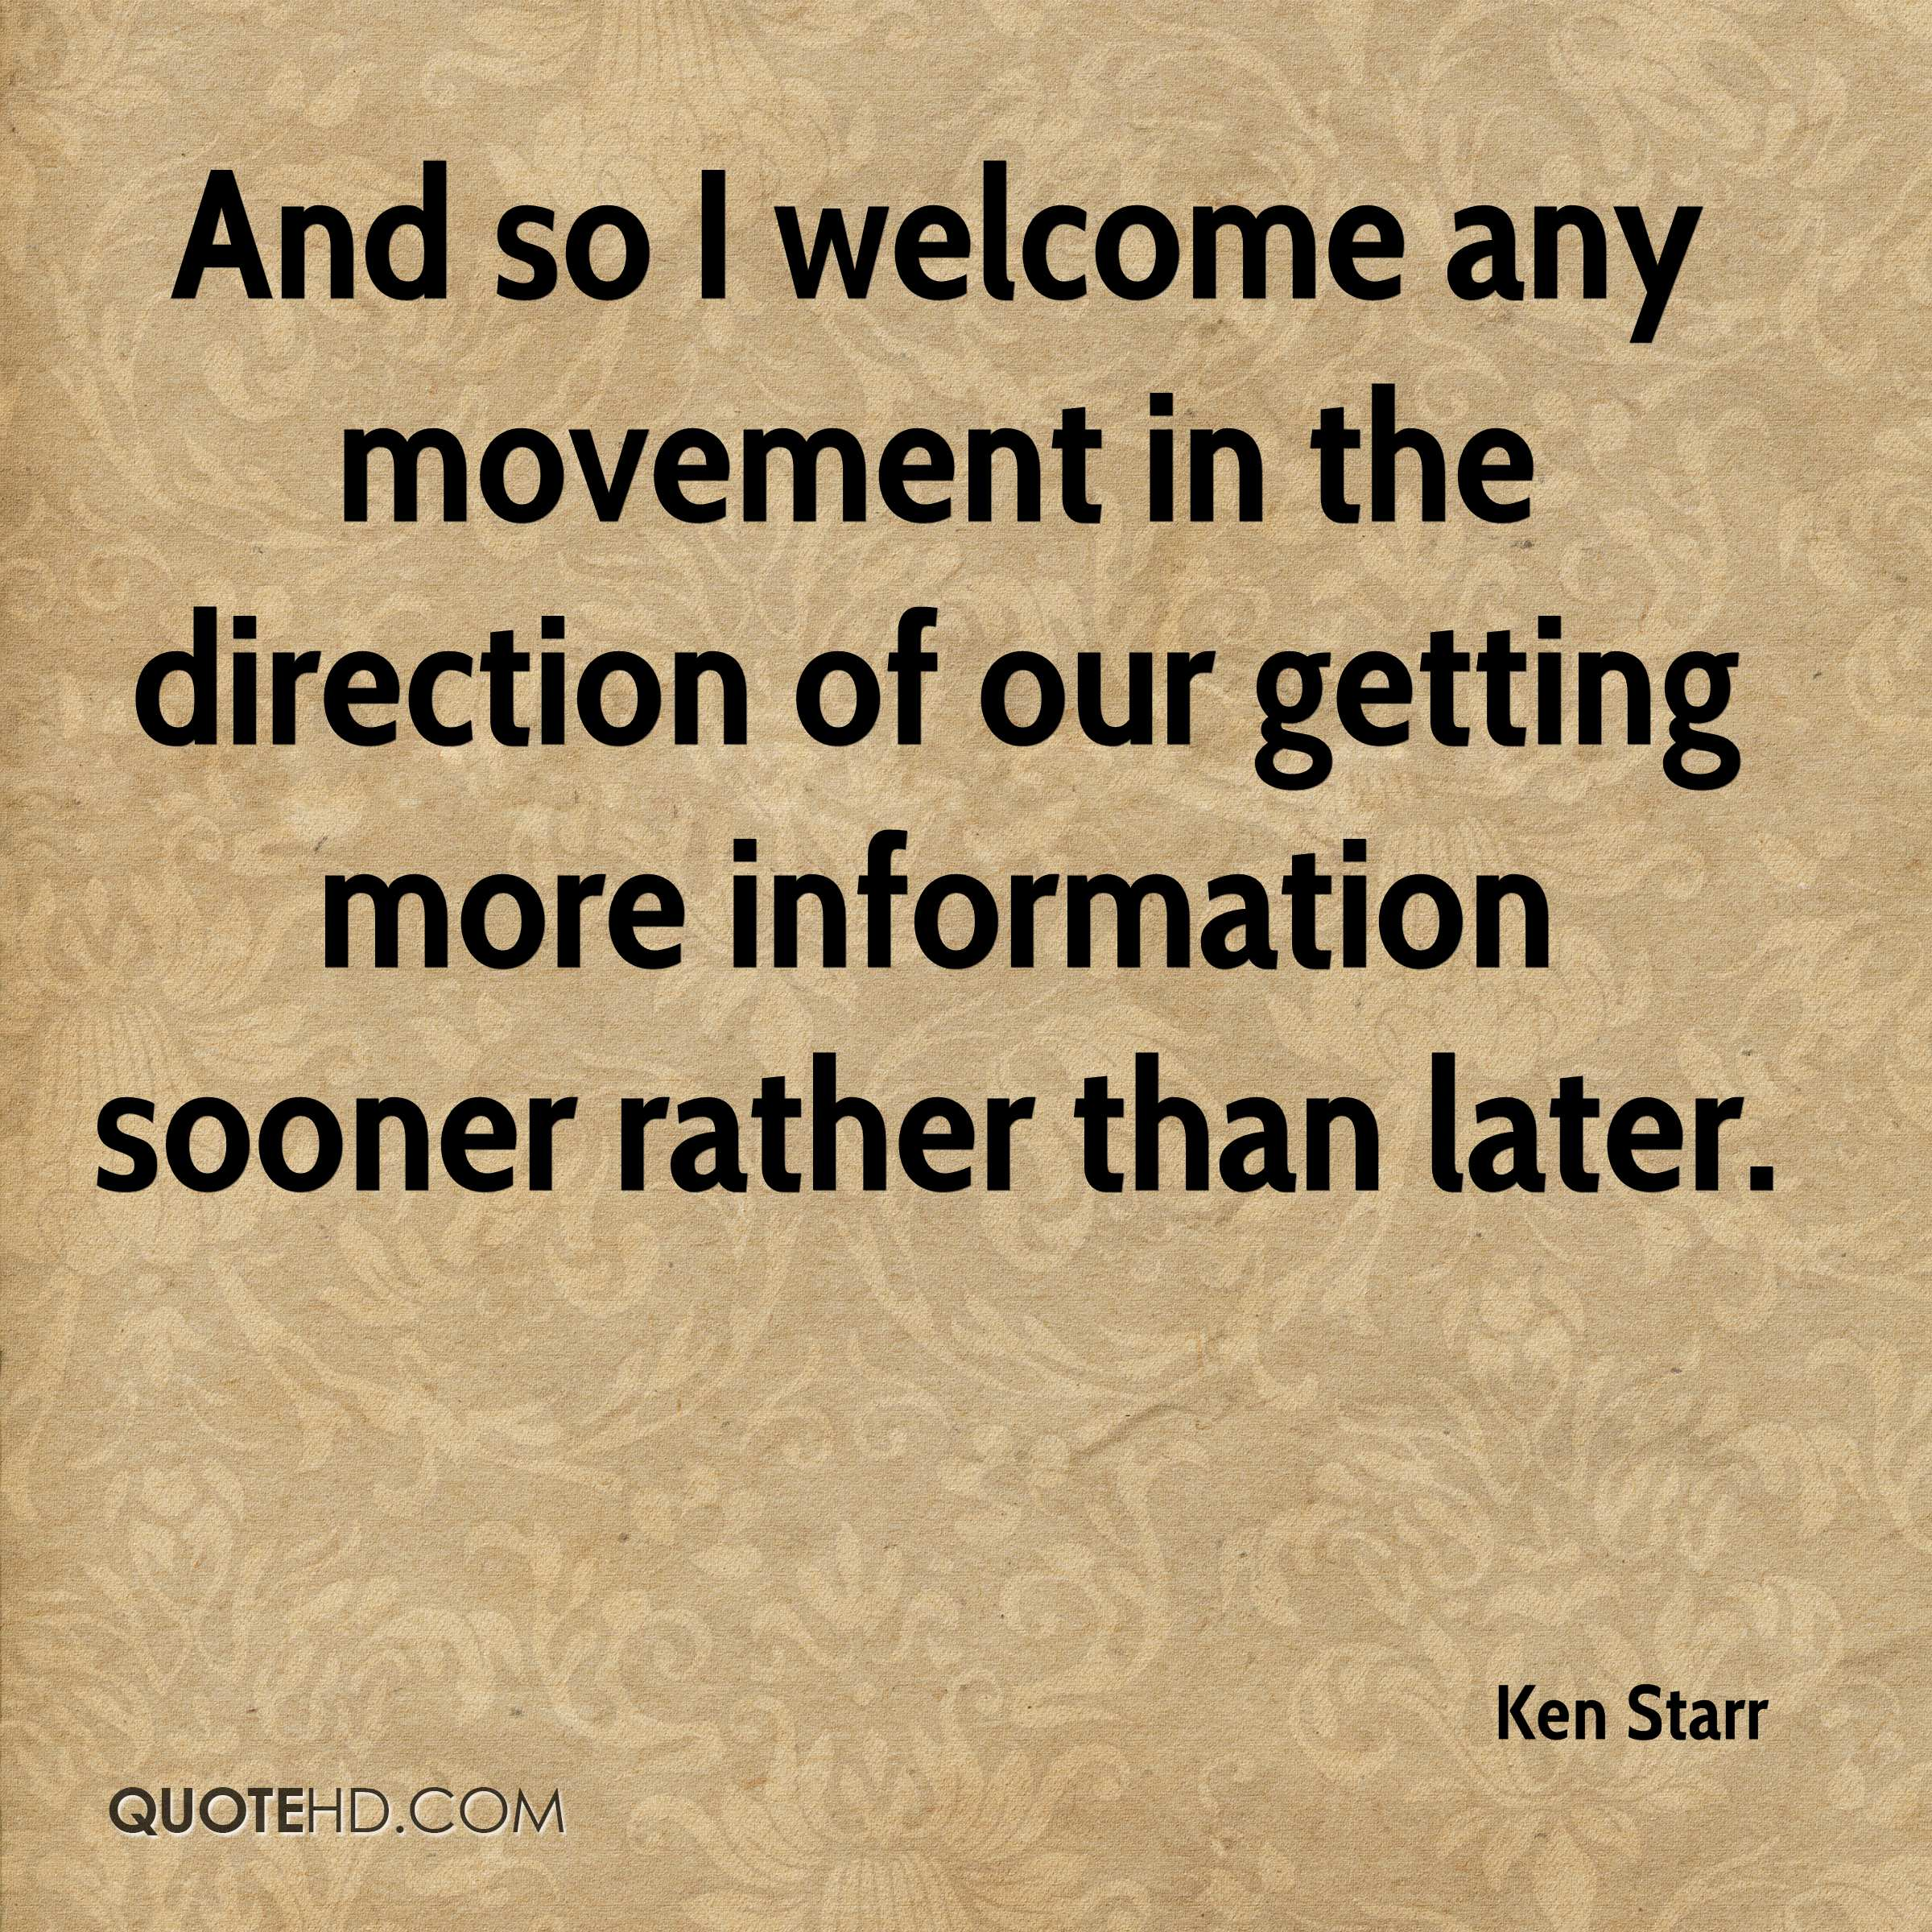 And so I welcome any movement in the direction of our getting more information sooner rather than later.